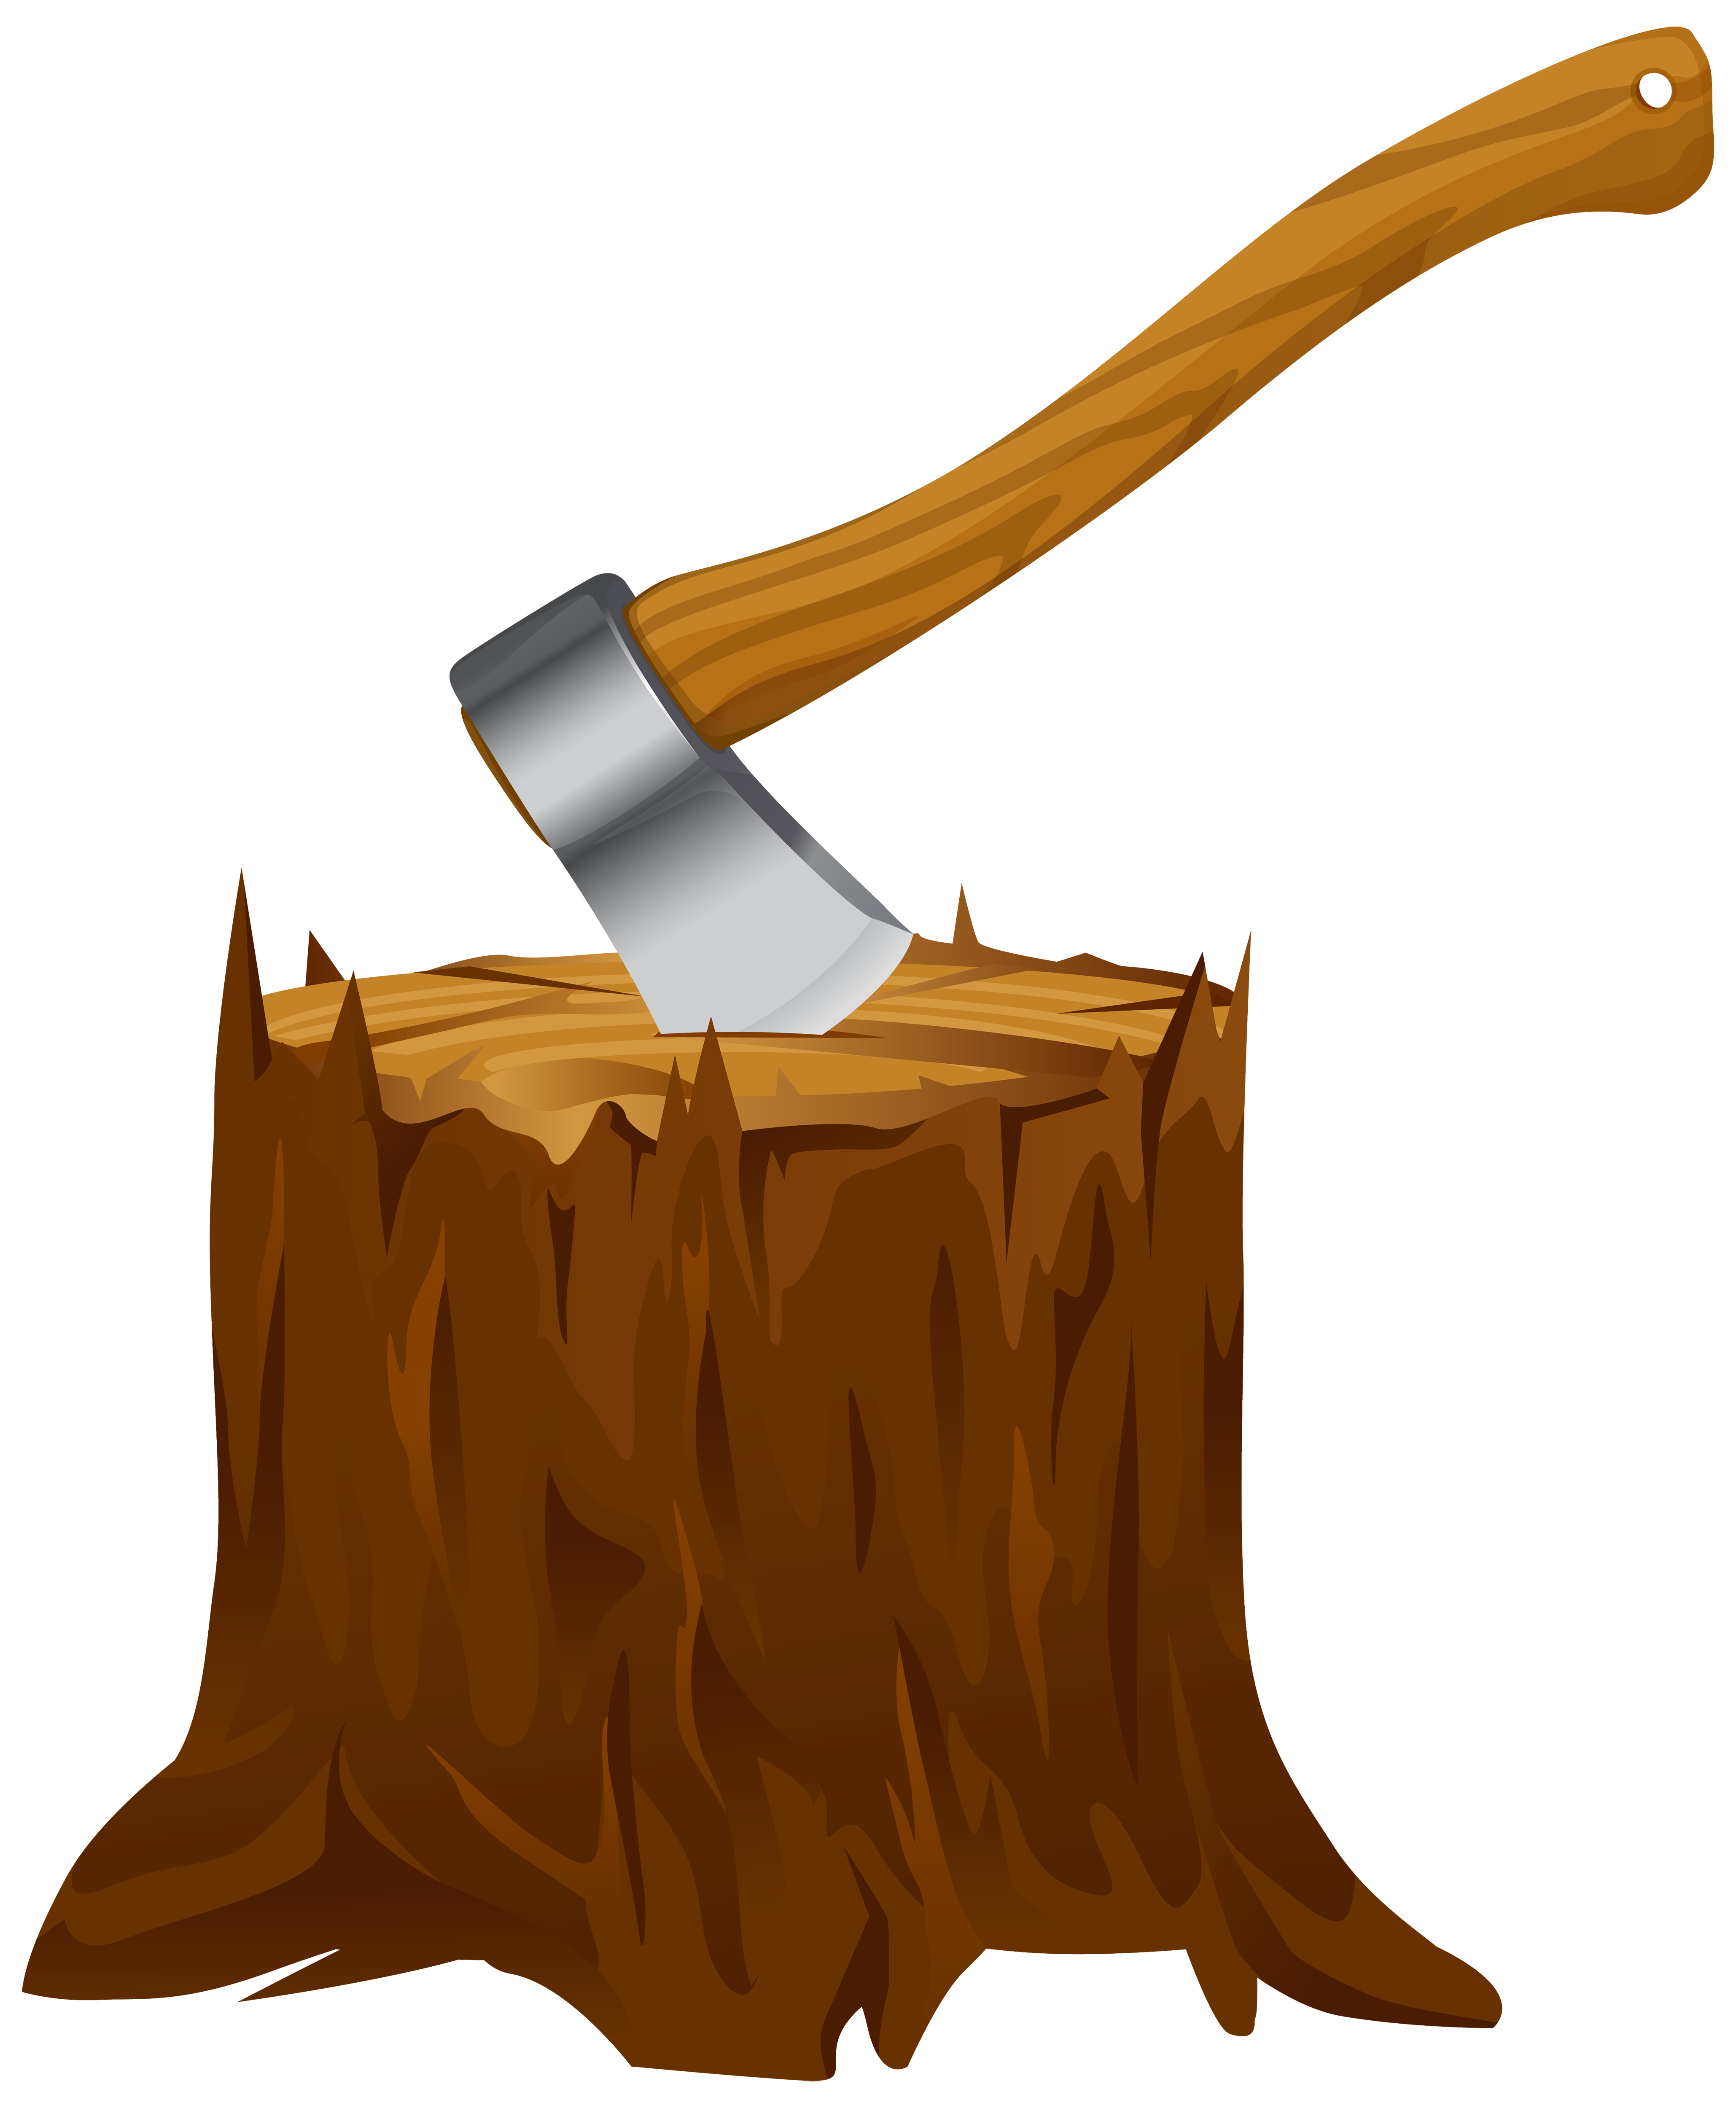 Ax and wood clipart jpg library library Free Transparent Axe Cliparts, Download Free Clip Art, Free Clip Art ... jpg library library